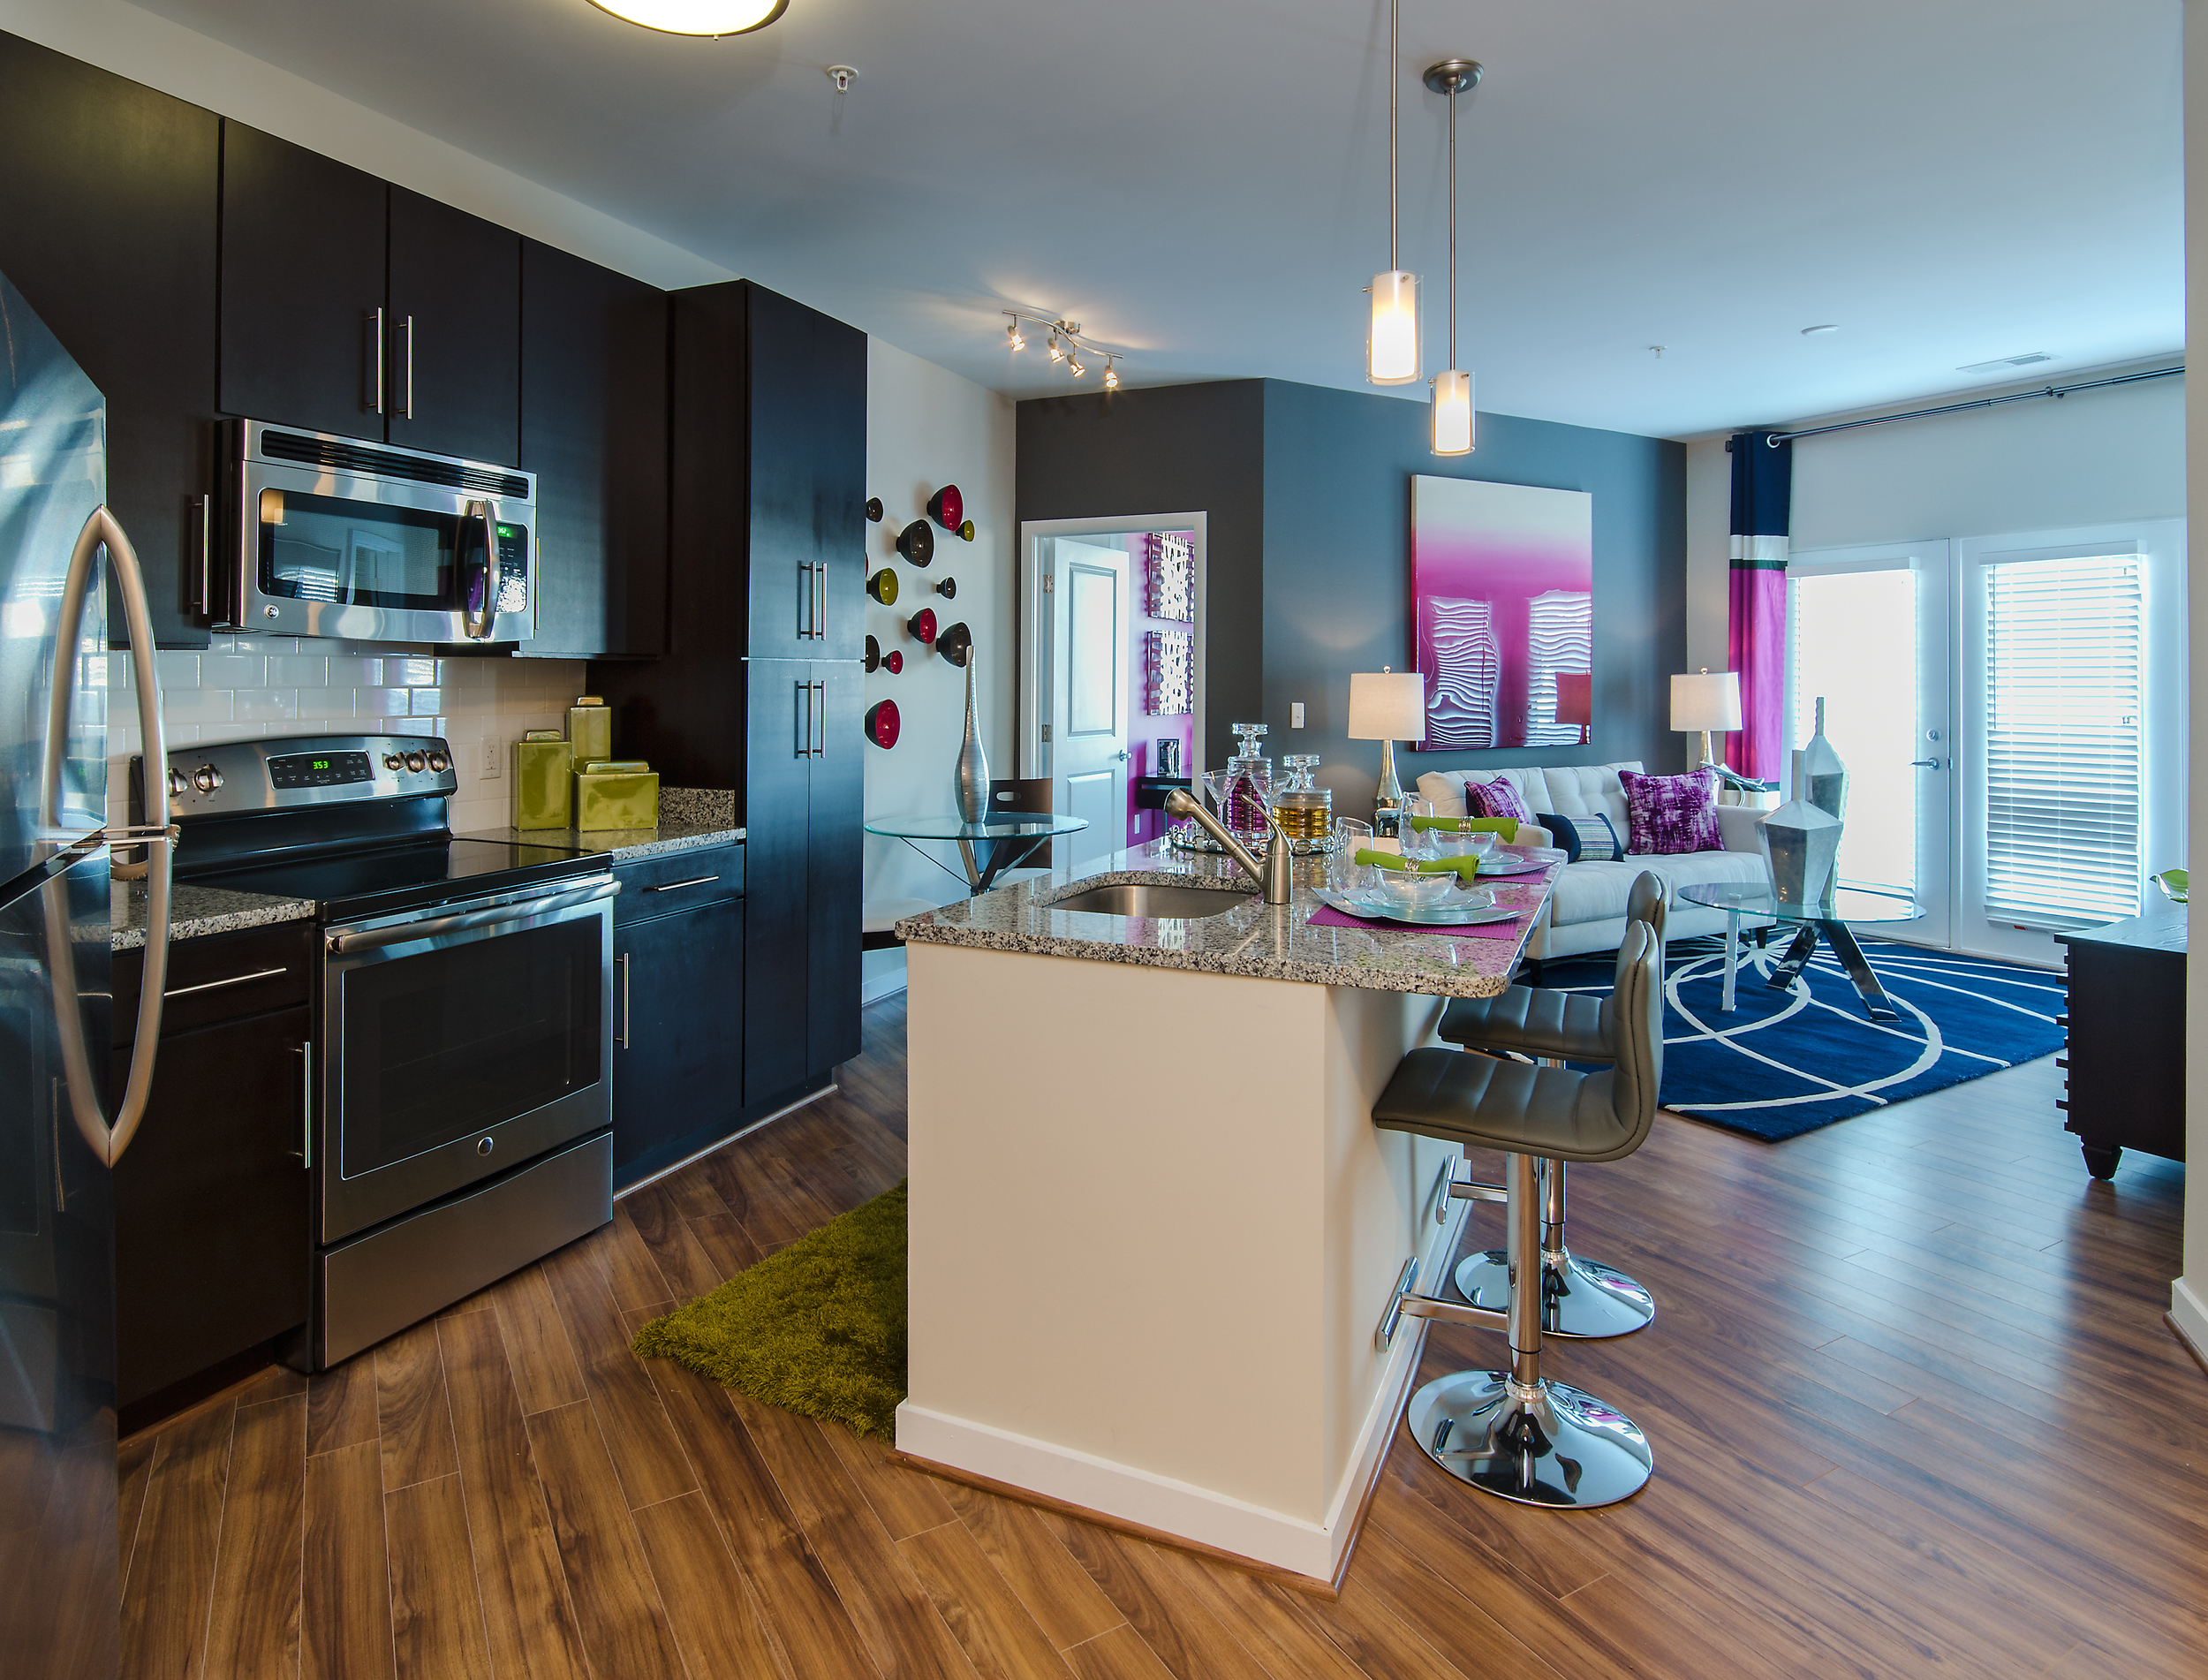 Bell-Del-Ray-Model-Single-Kitchen-LR-2-11-14.jpg